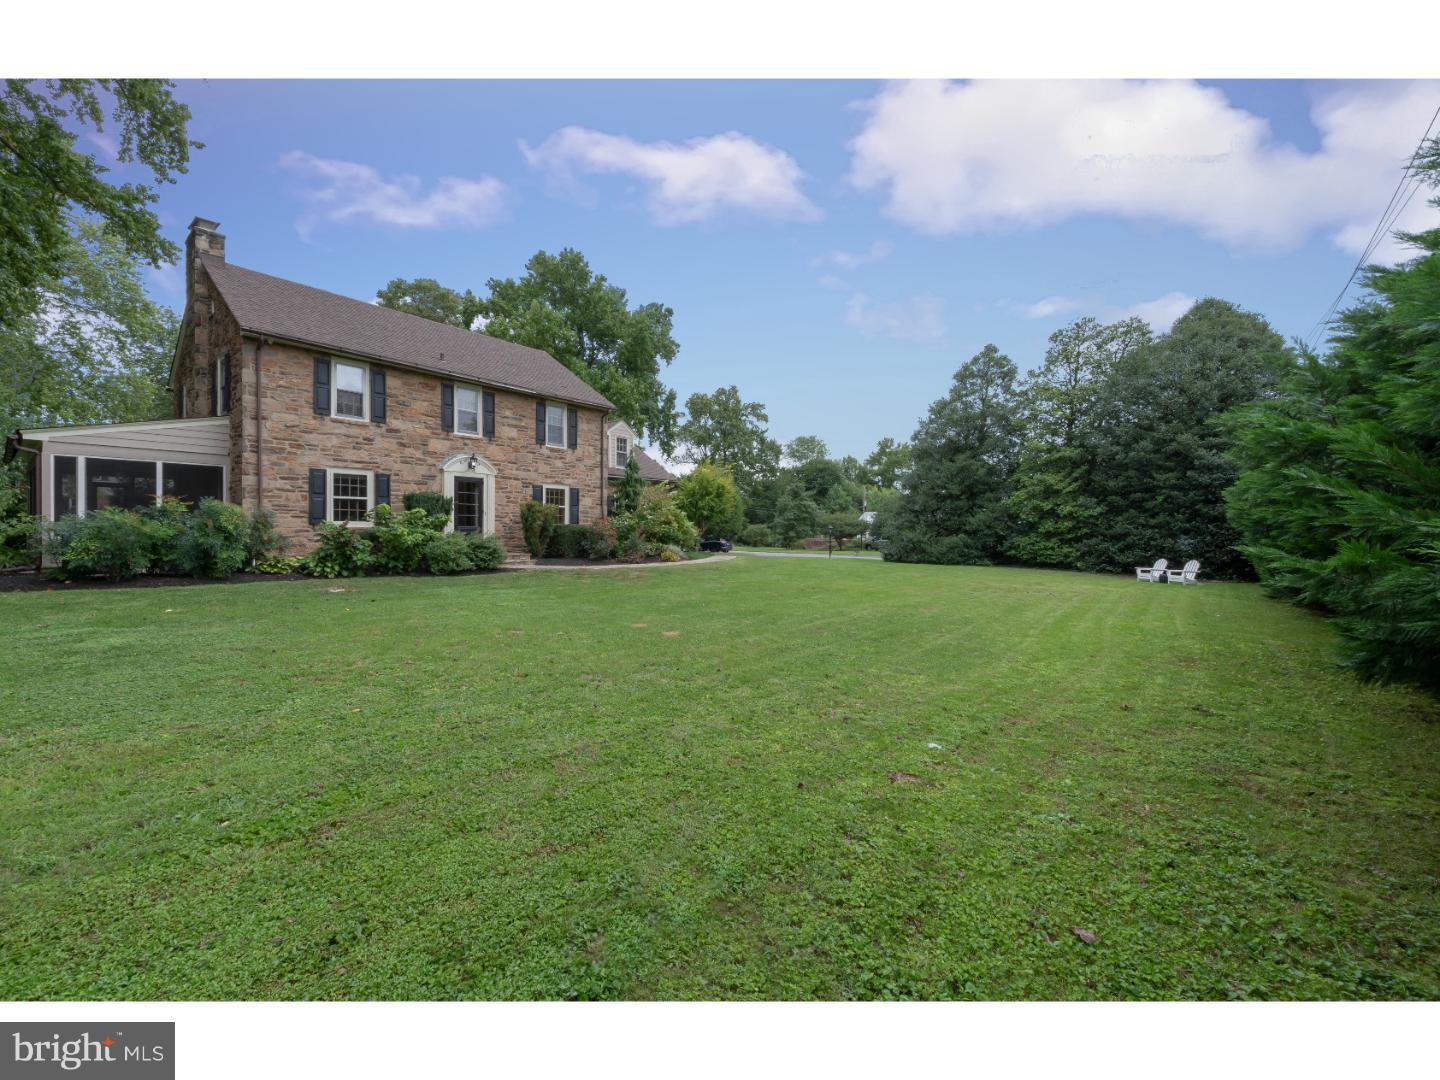 Charming stone colonial loaded with character sited on a private, well landscaped, half acre lot in